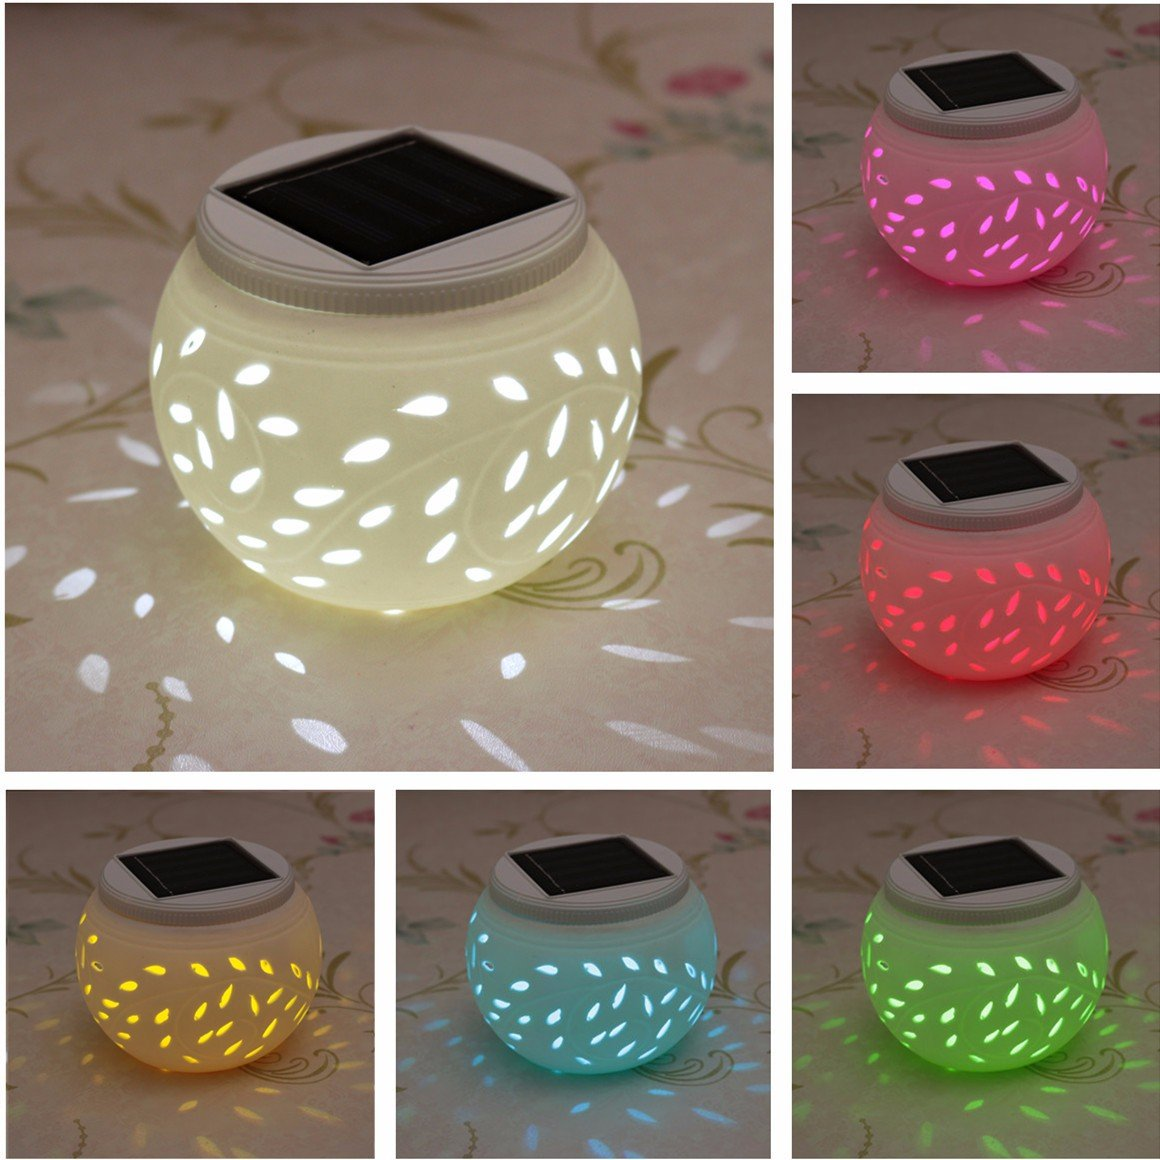 Ceramic Solar Light,SOLMORE LED Solar Table Lights Garden Lights Filigree Lights Solar Outdoor Lights Waterproof for Party Home Yard Patio Outdoor Indoor Decoration Night Lamp Color amp Color Changing